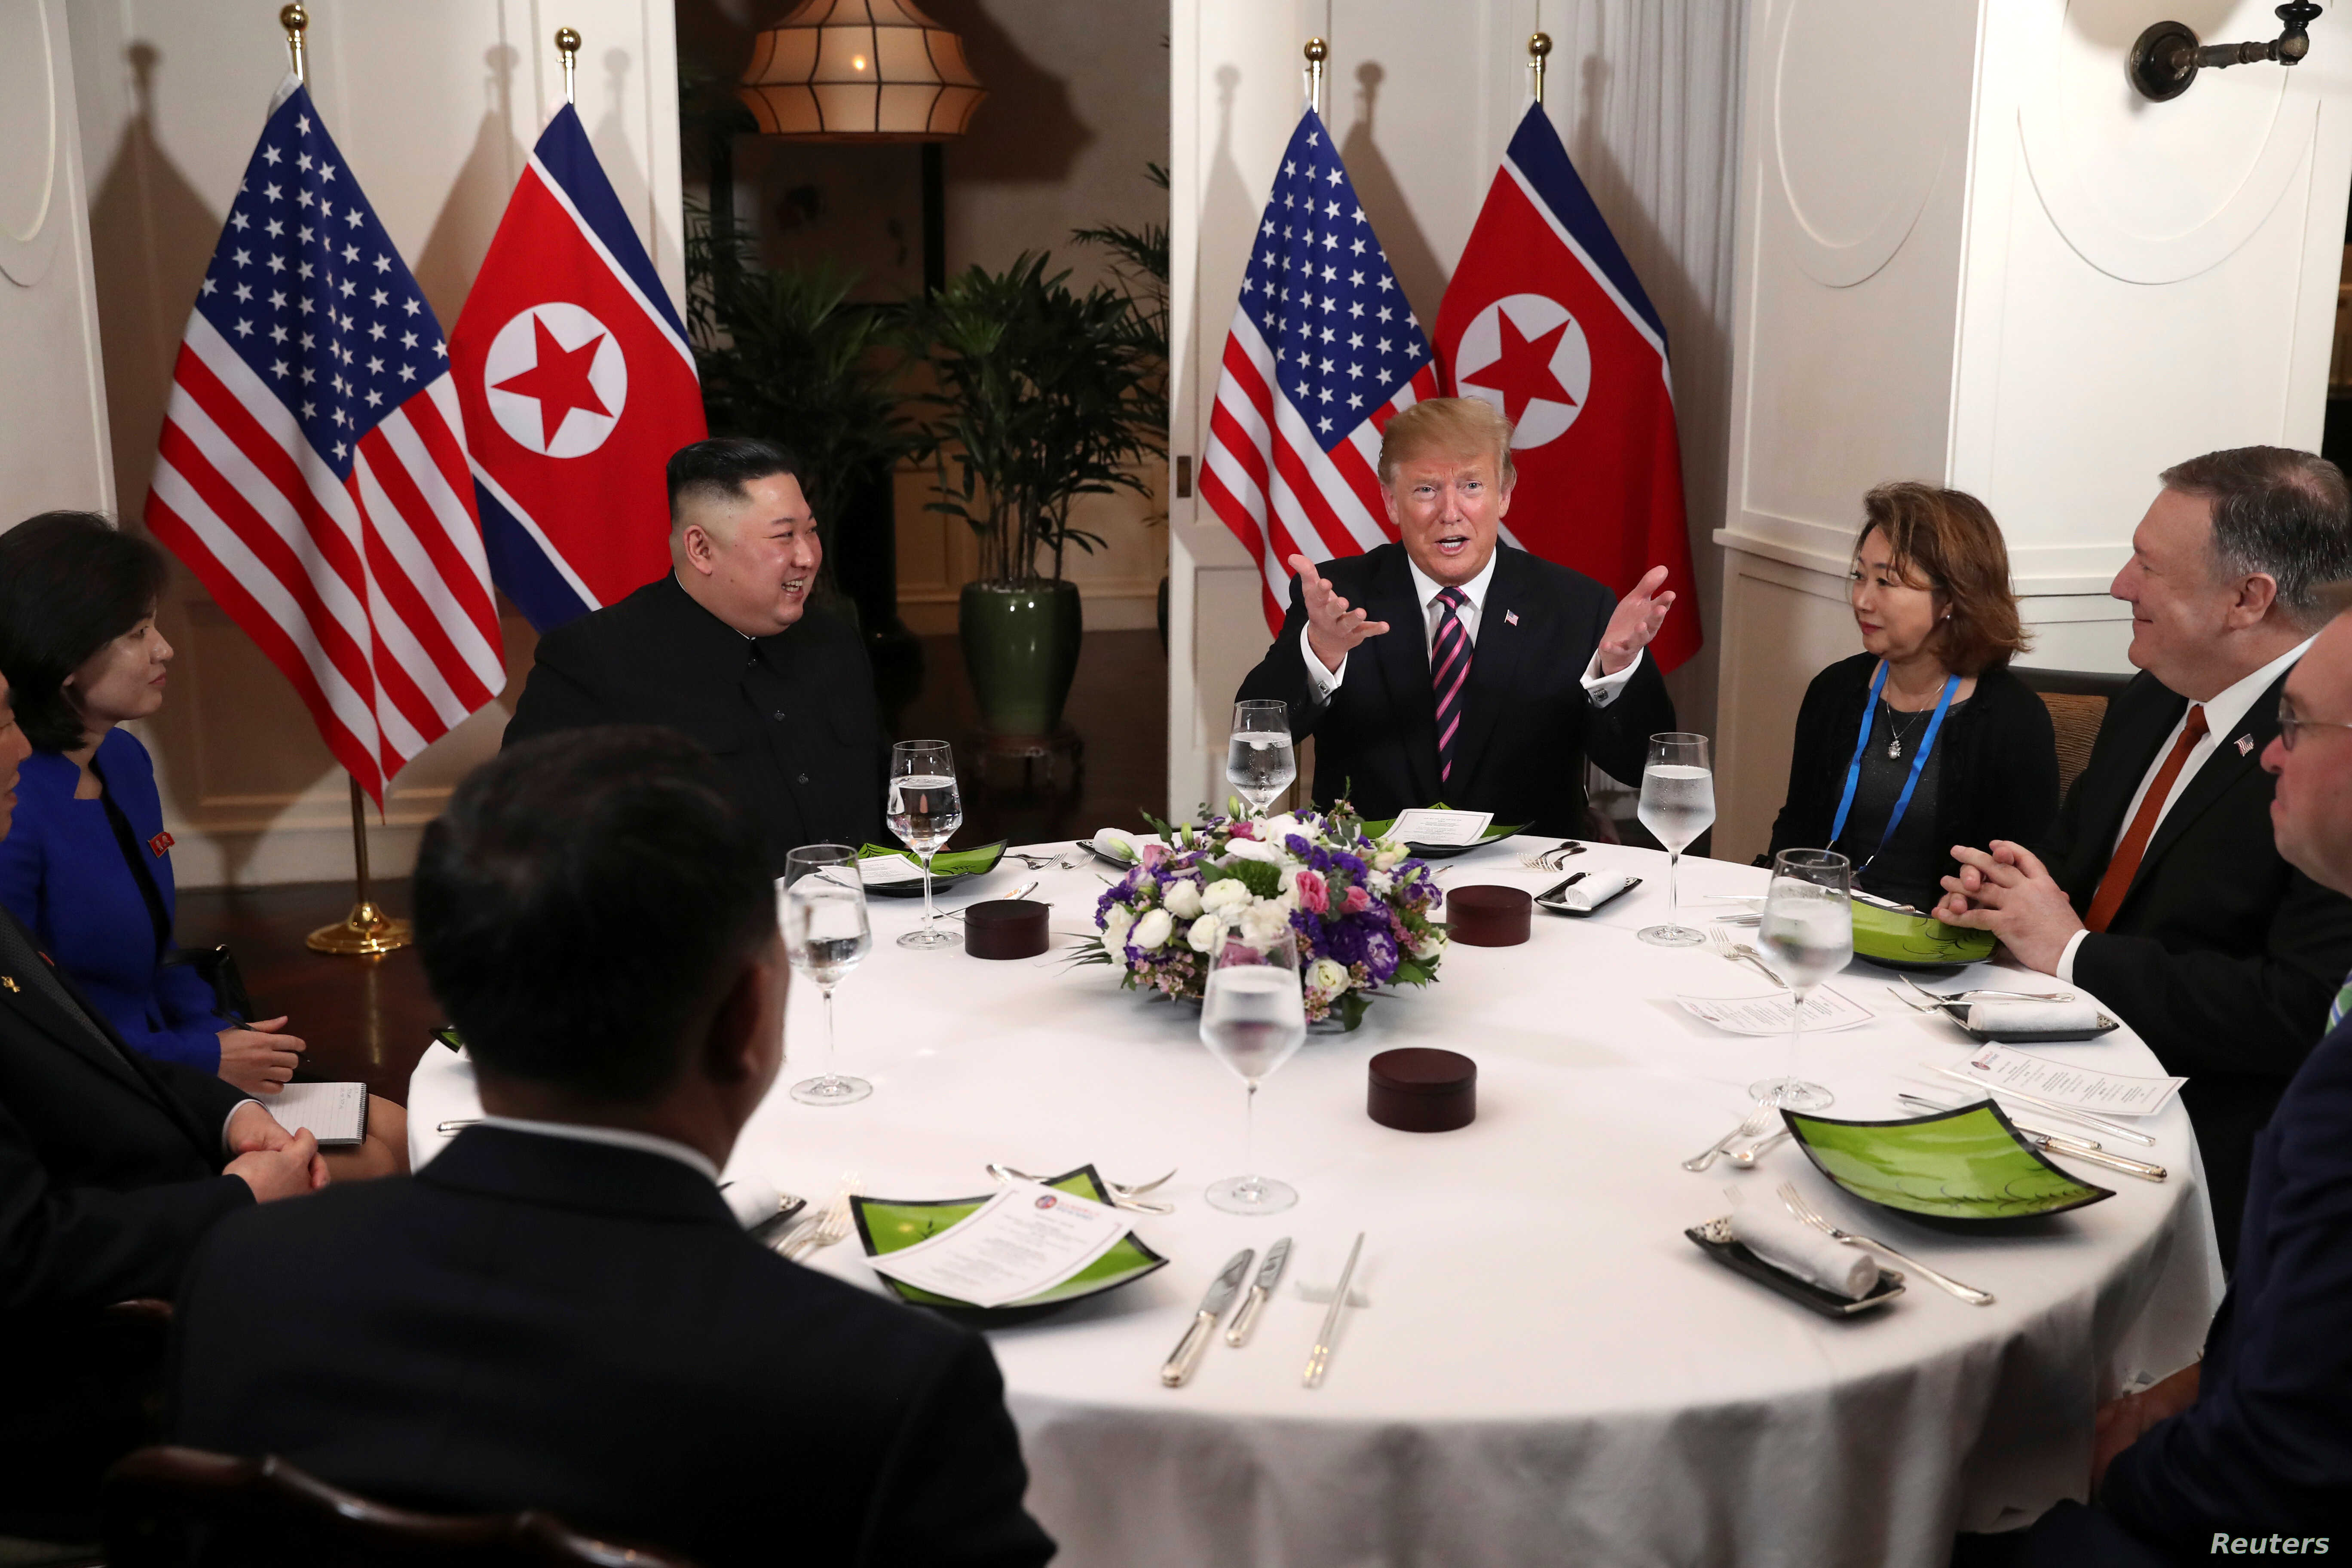 U.S. President Donald Trump and North Korean leader Kim Jong Un sit down for a dinner during the second U.S.-North Korea summit at the Metropole Hotel in Hanoi, Vietnam Feb. 27, 2019.